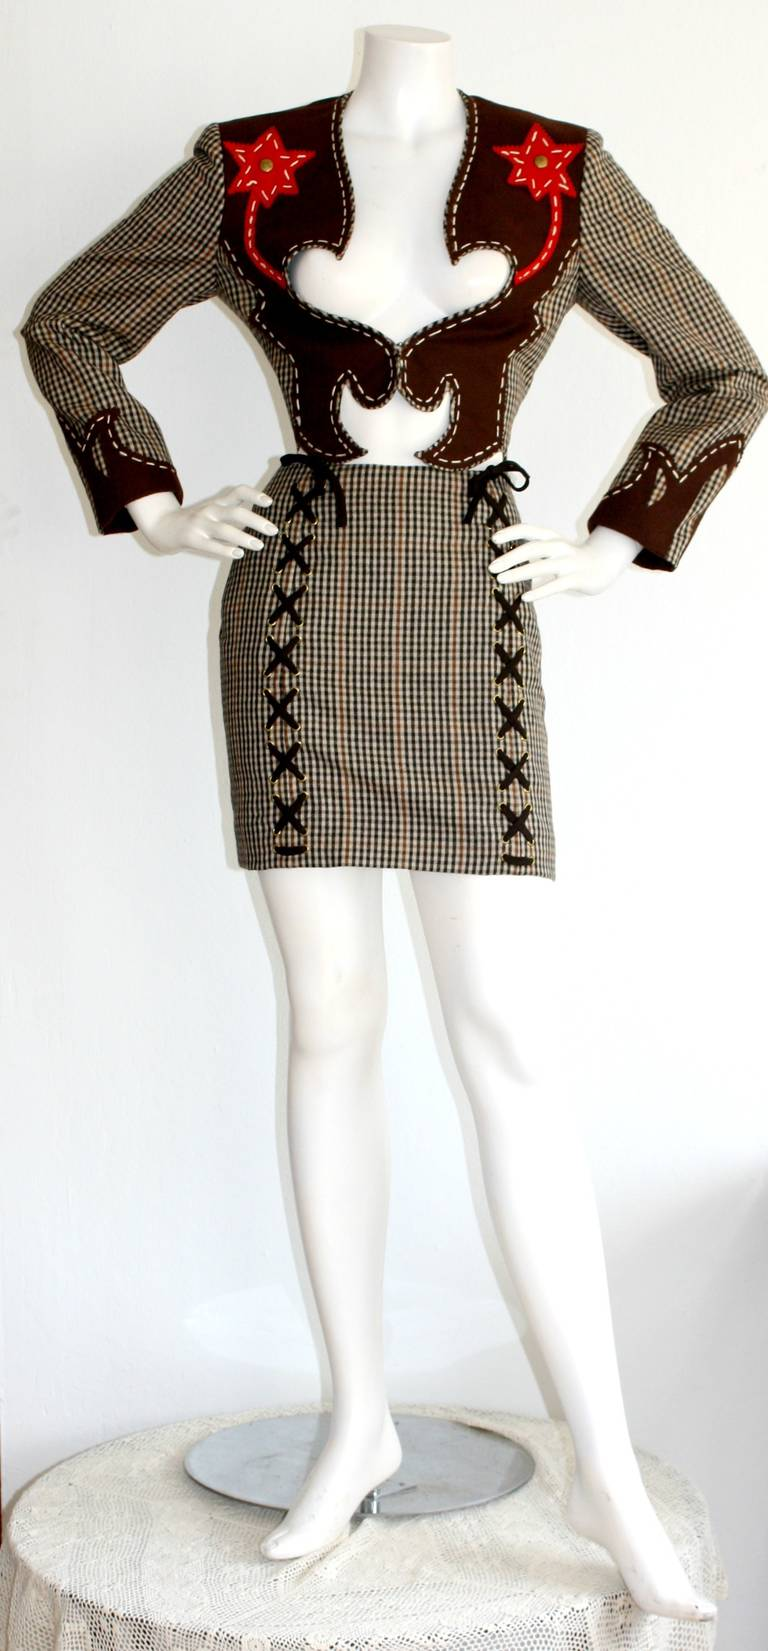 Rare Vintage Moschino Cheap & Chic Western Cowgirl Houndstooth Lace Suit 3